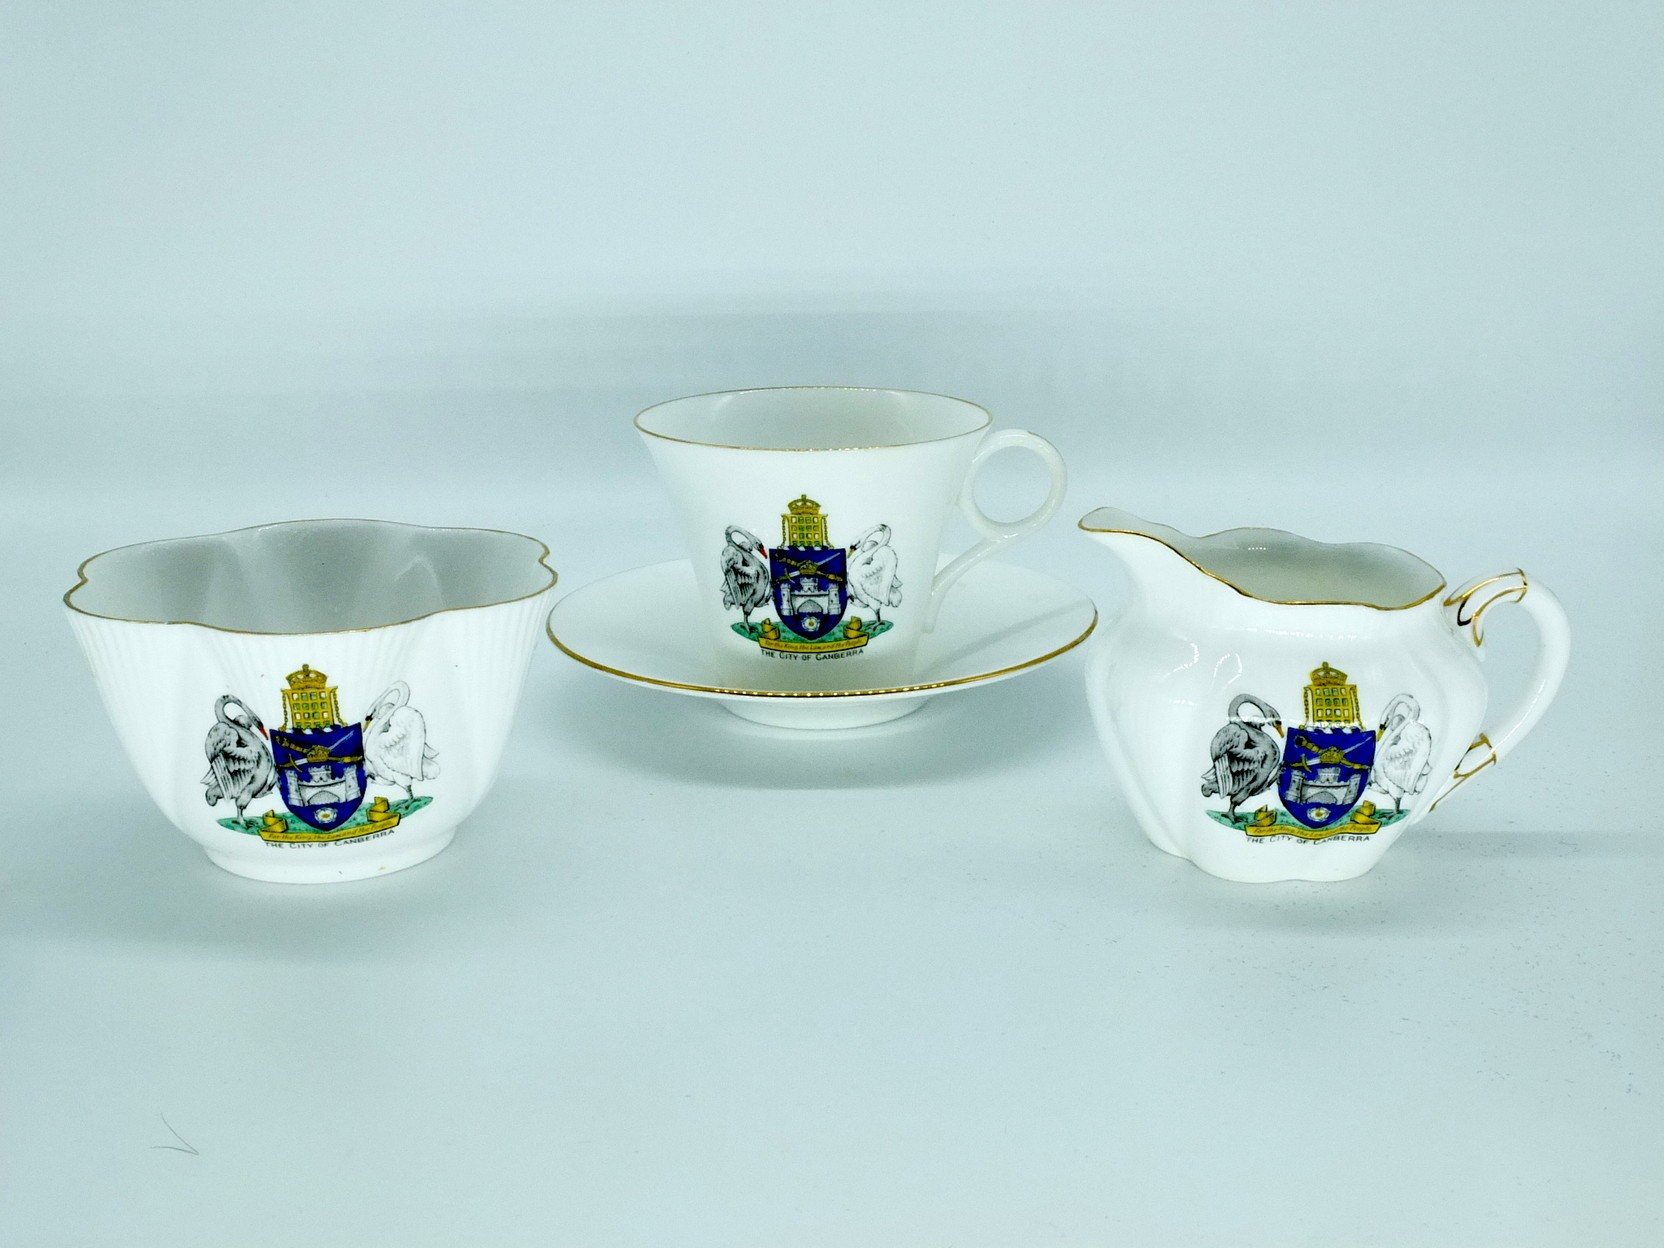 'Three Piece Shelley Tea Setting with Canberra Coat of Arms'